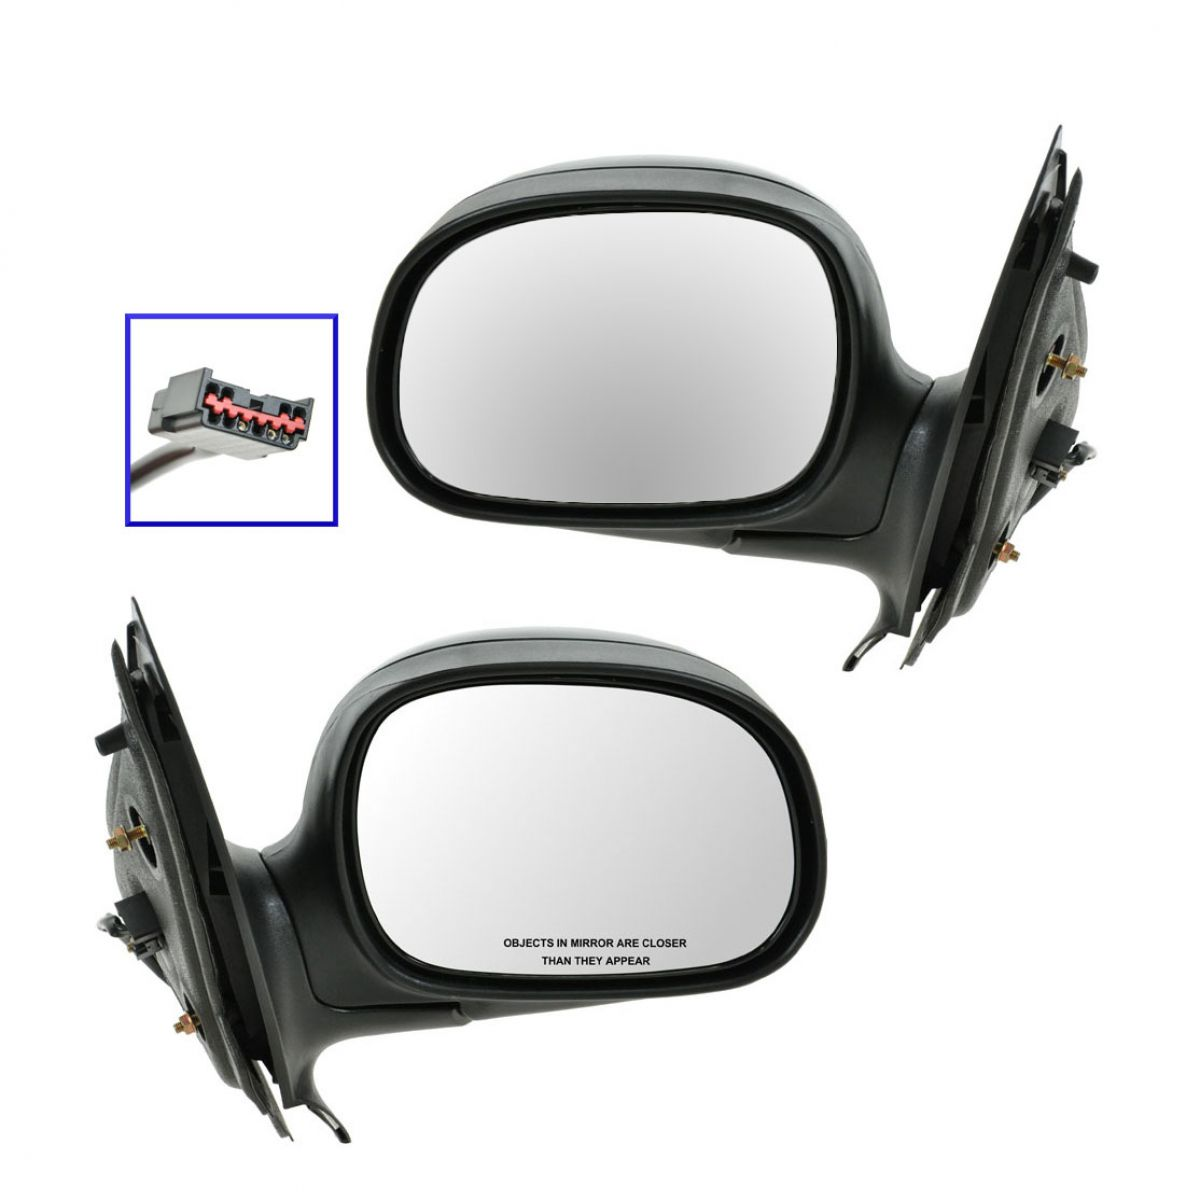 Black /& Chrome Heated Folding Power Mirror Right RH for 97-02 Ford Expedition